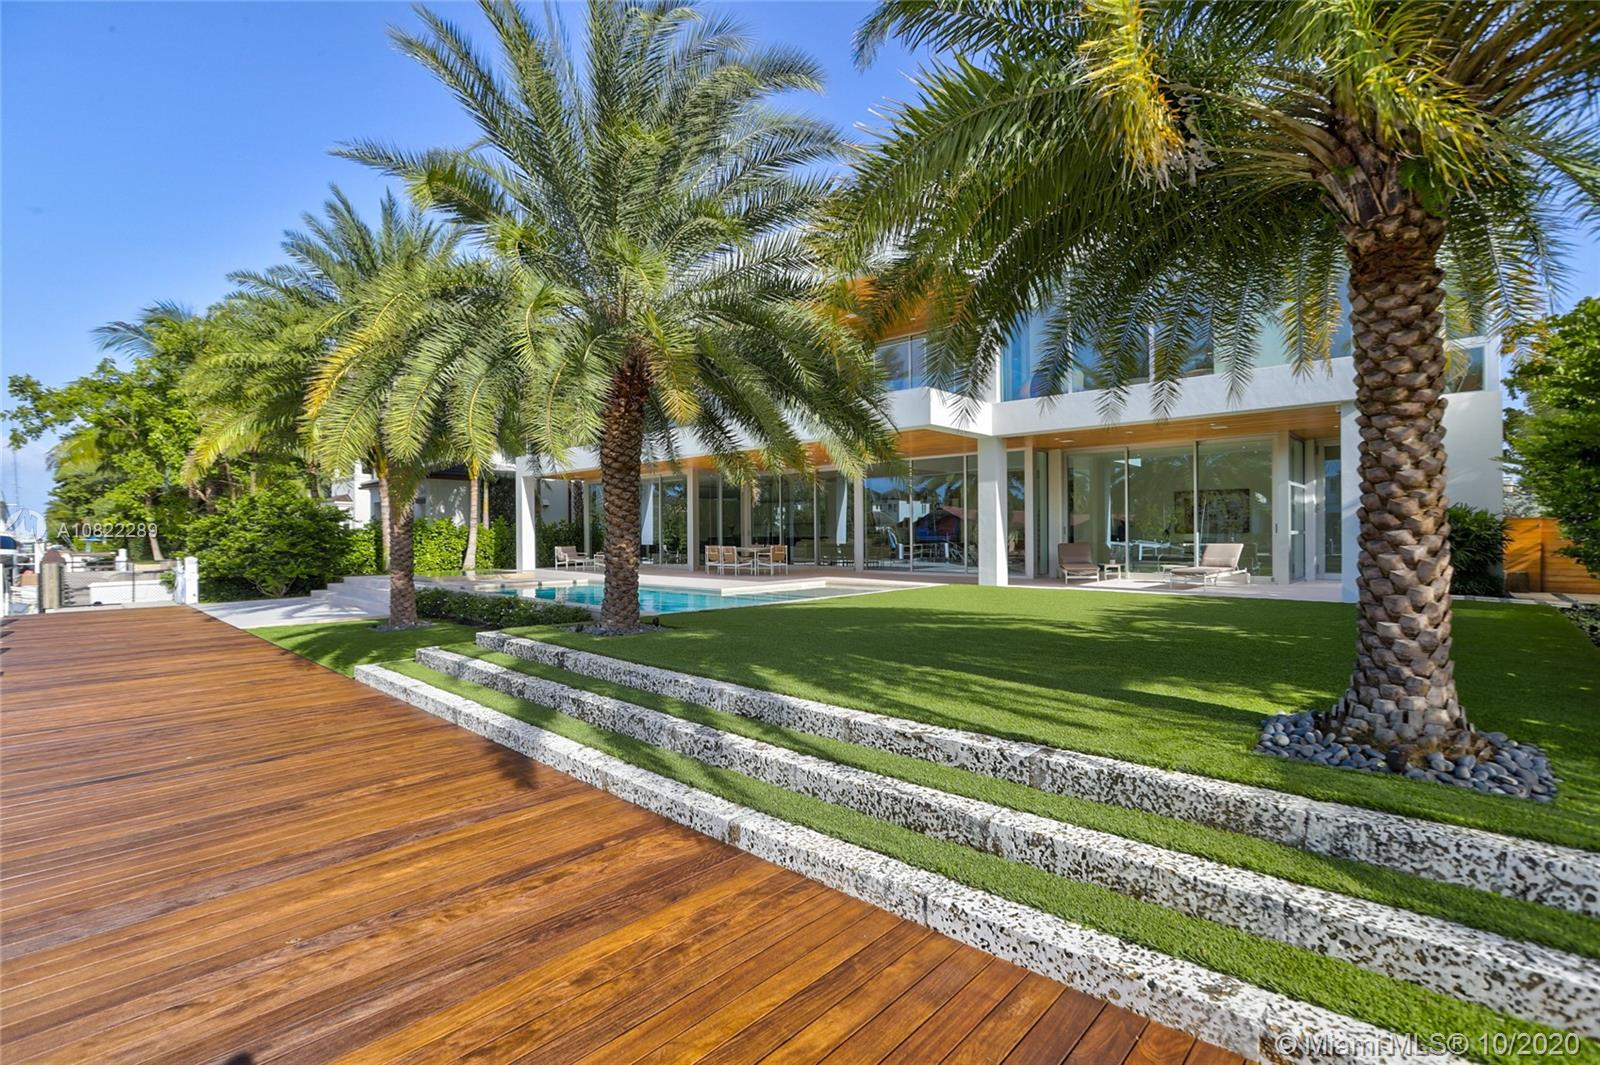 Fort Lauderdale's finest Organic High End Finishes & intelligent Architecture, in exclusive Rio Vista. This modern home offers 100 ft of waterfront w/ new Ipe Dock & Seawall, easy ocean access & 125 ft deep lot w/ Saltwater Heated Pool & Infinity Spa. Eggersmann kitchen w/ Miele & Gaggenau appliances, Glass & Lacquer cabinets & Stainless & Carrara Marble Counters. European Wide Plank Oak & Limestone Floors, Italian laminated hingeless doors, architectural metal baseboards, Pedini Closets. Master Suite w/ Downtown Views, Calacatta Gold Marble & Eggersmann Closet w/ semi precious stone. Sub Zero Wine Cooler, Custom Elevator, Expansive open concept in & out, Smart Home, integrated sound & security, Motorized Shades. ** VIDEO TOUR: https://bit.ly/2EKwJrn ** 3D TOUR: https://bit.ly/3jZTPKx **